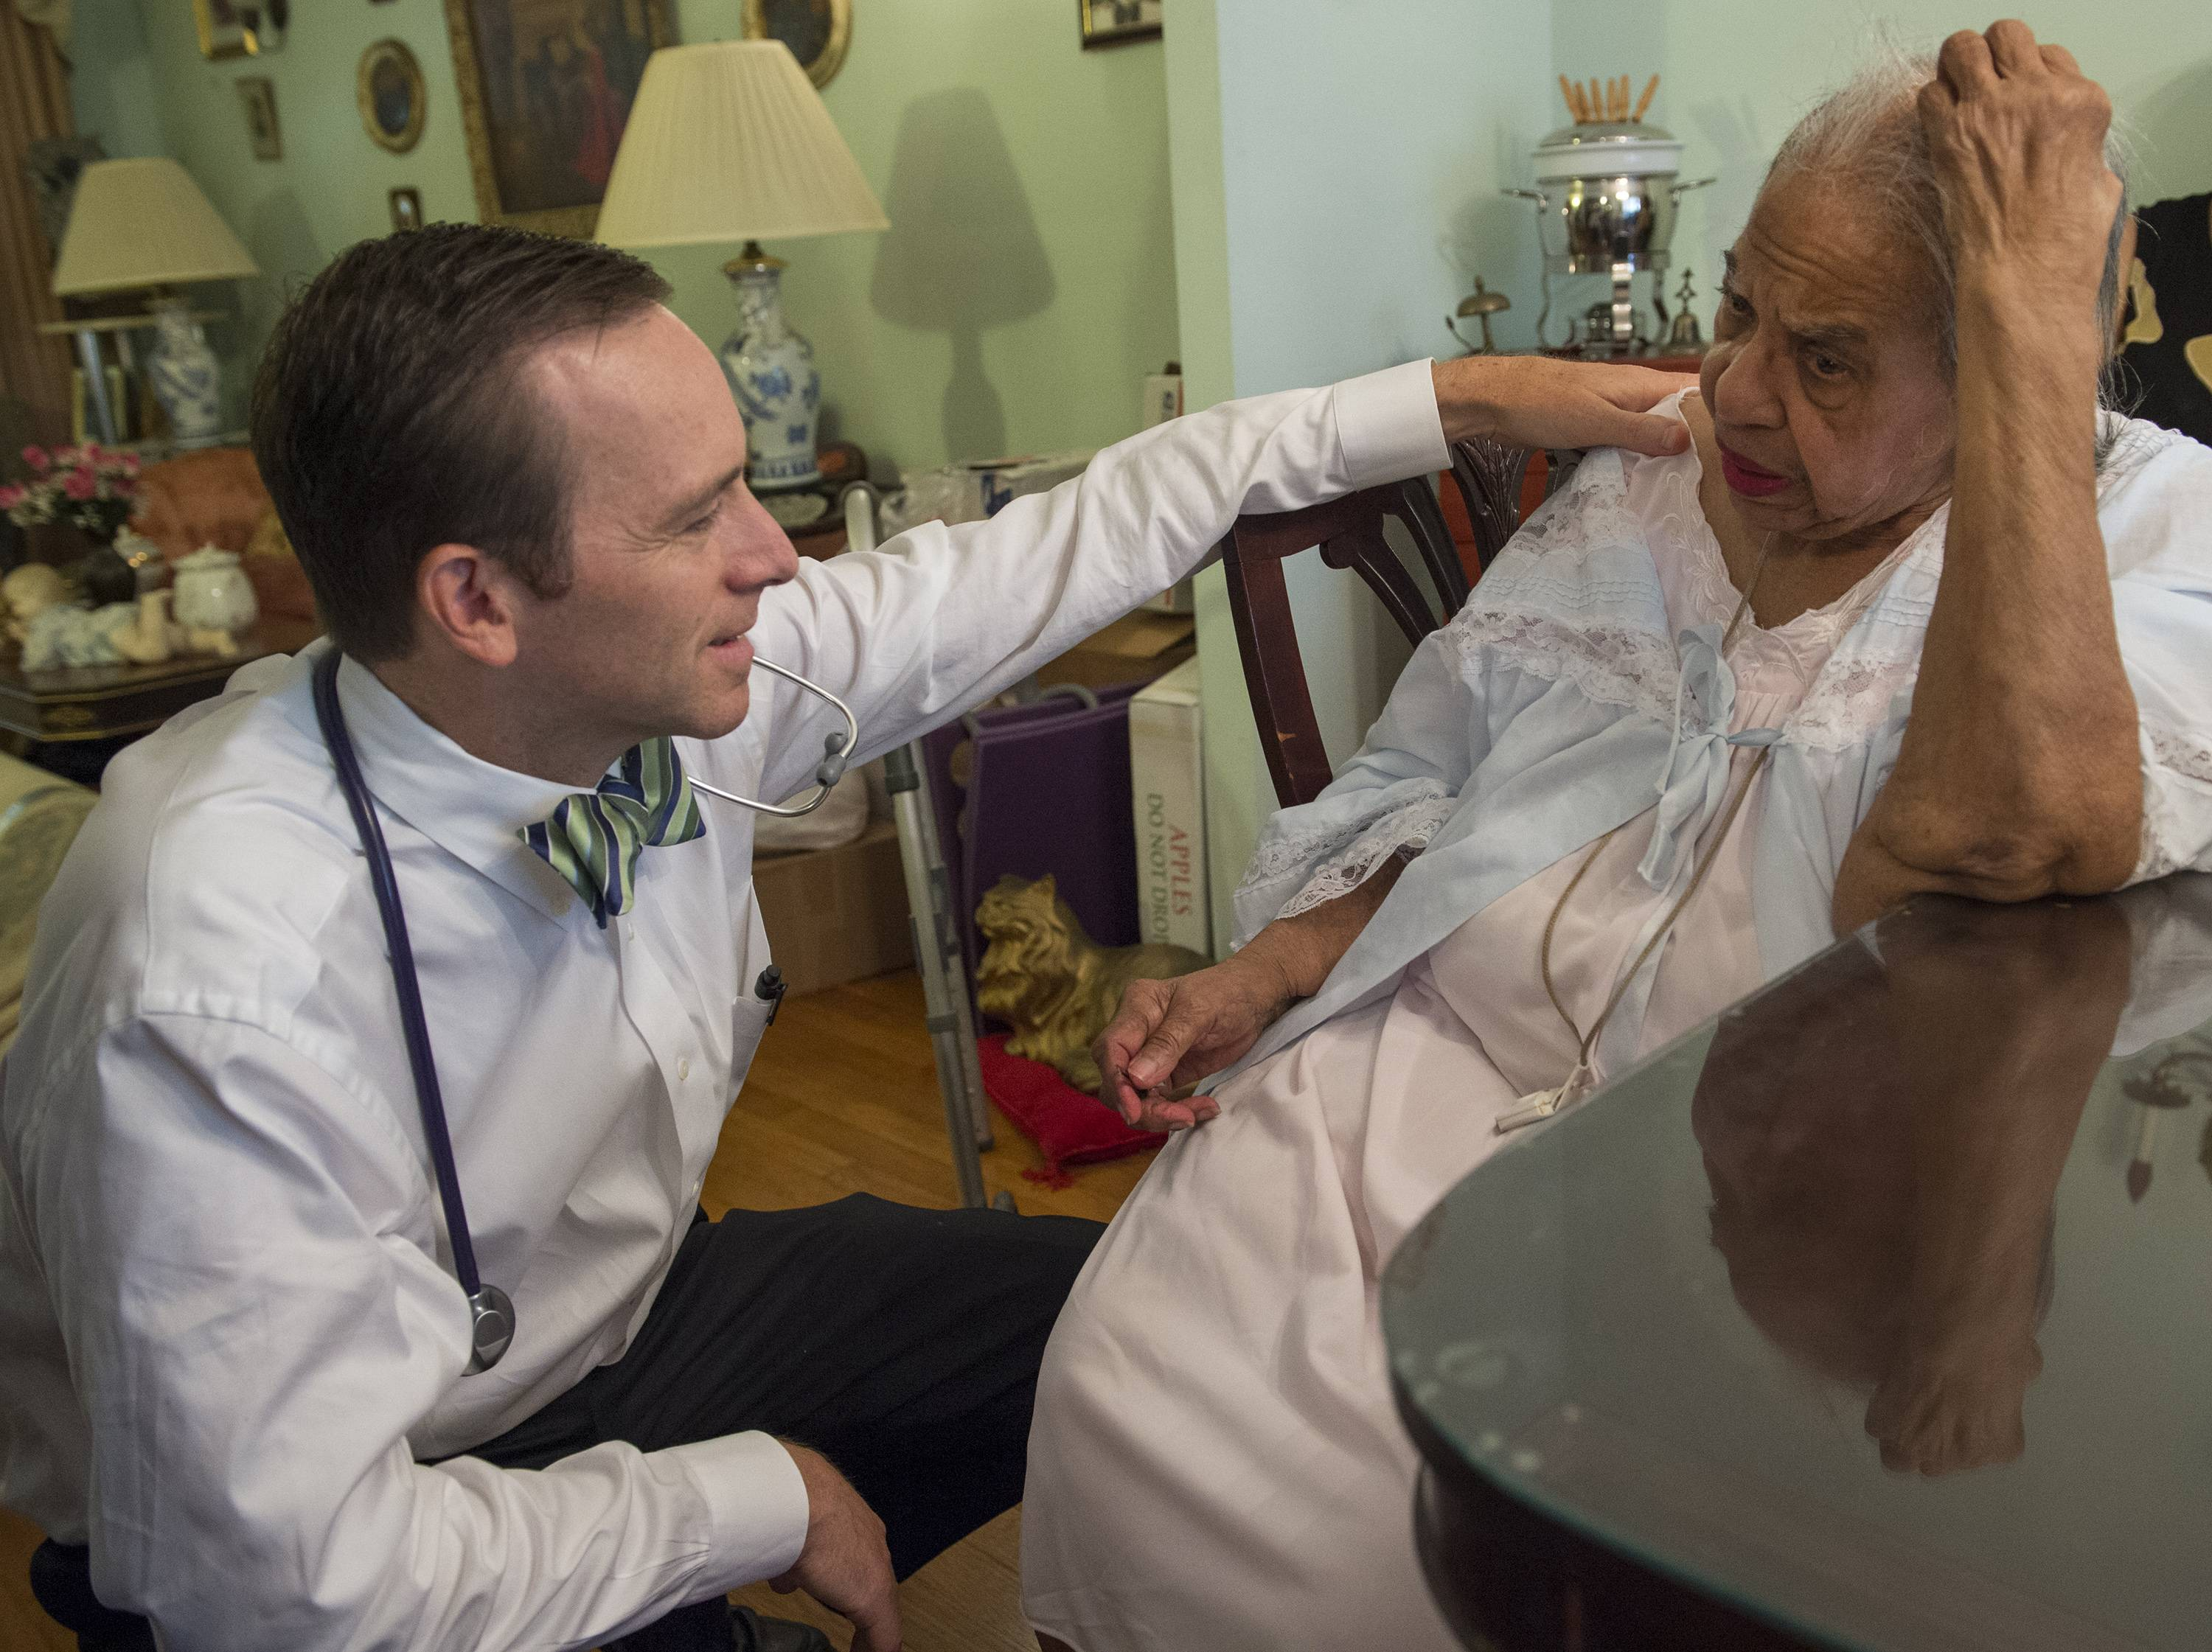 Dr. Eric De Jonge conducts a Medicare house call at the home of patient Beatrice Adams.